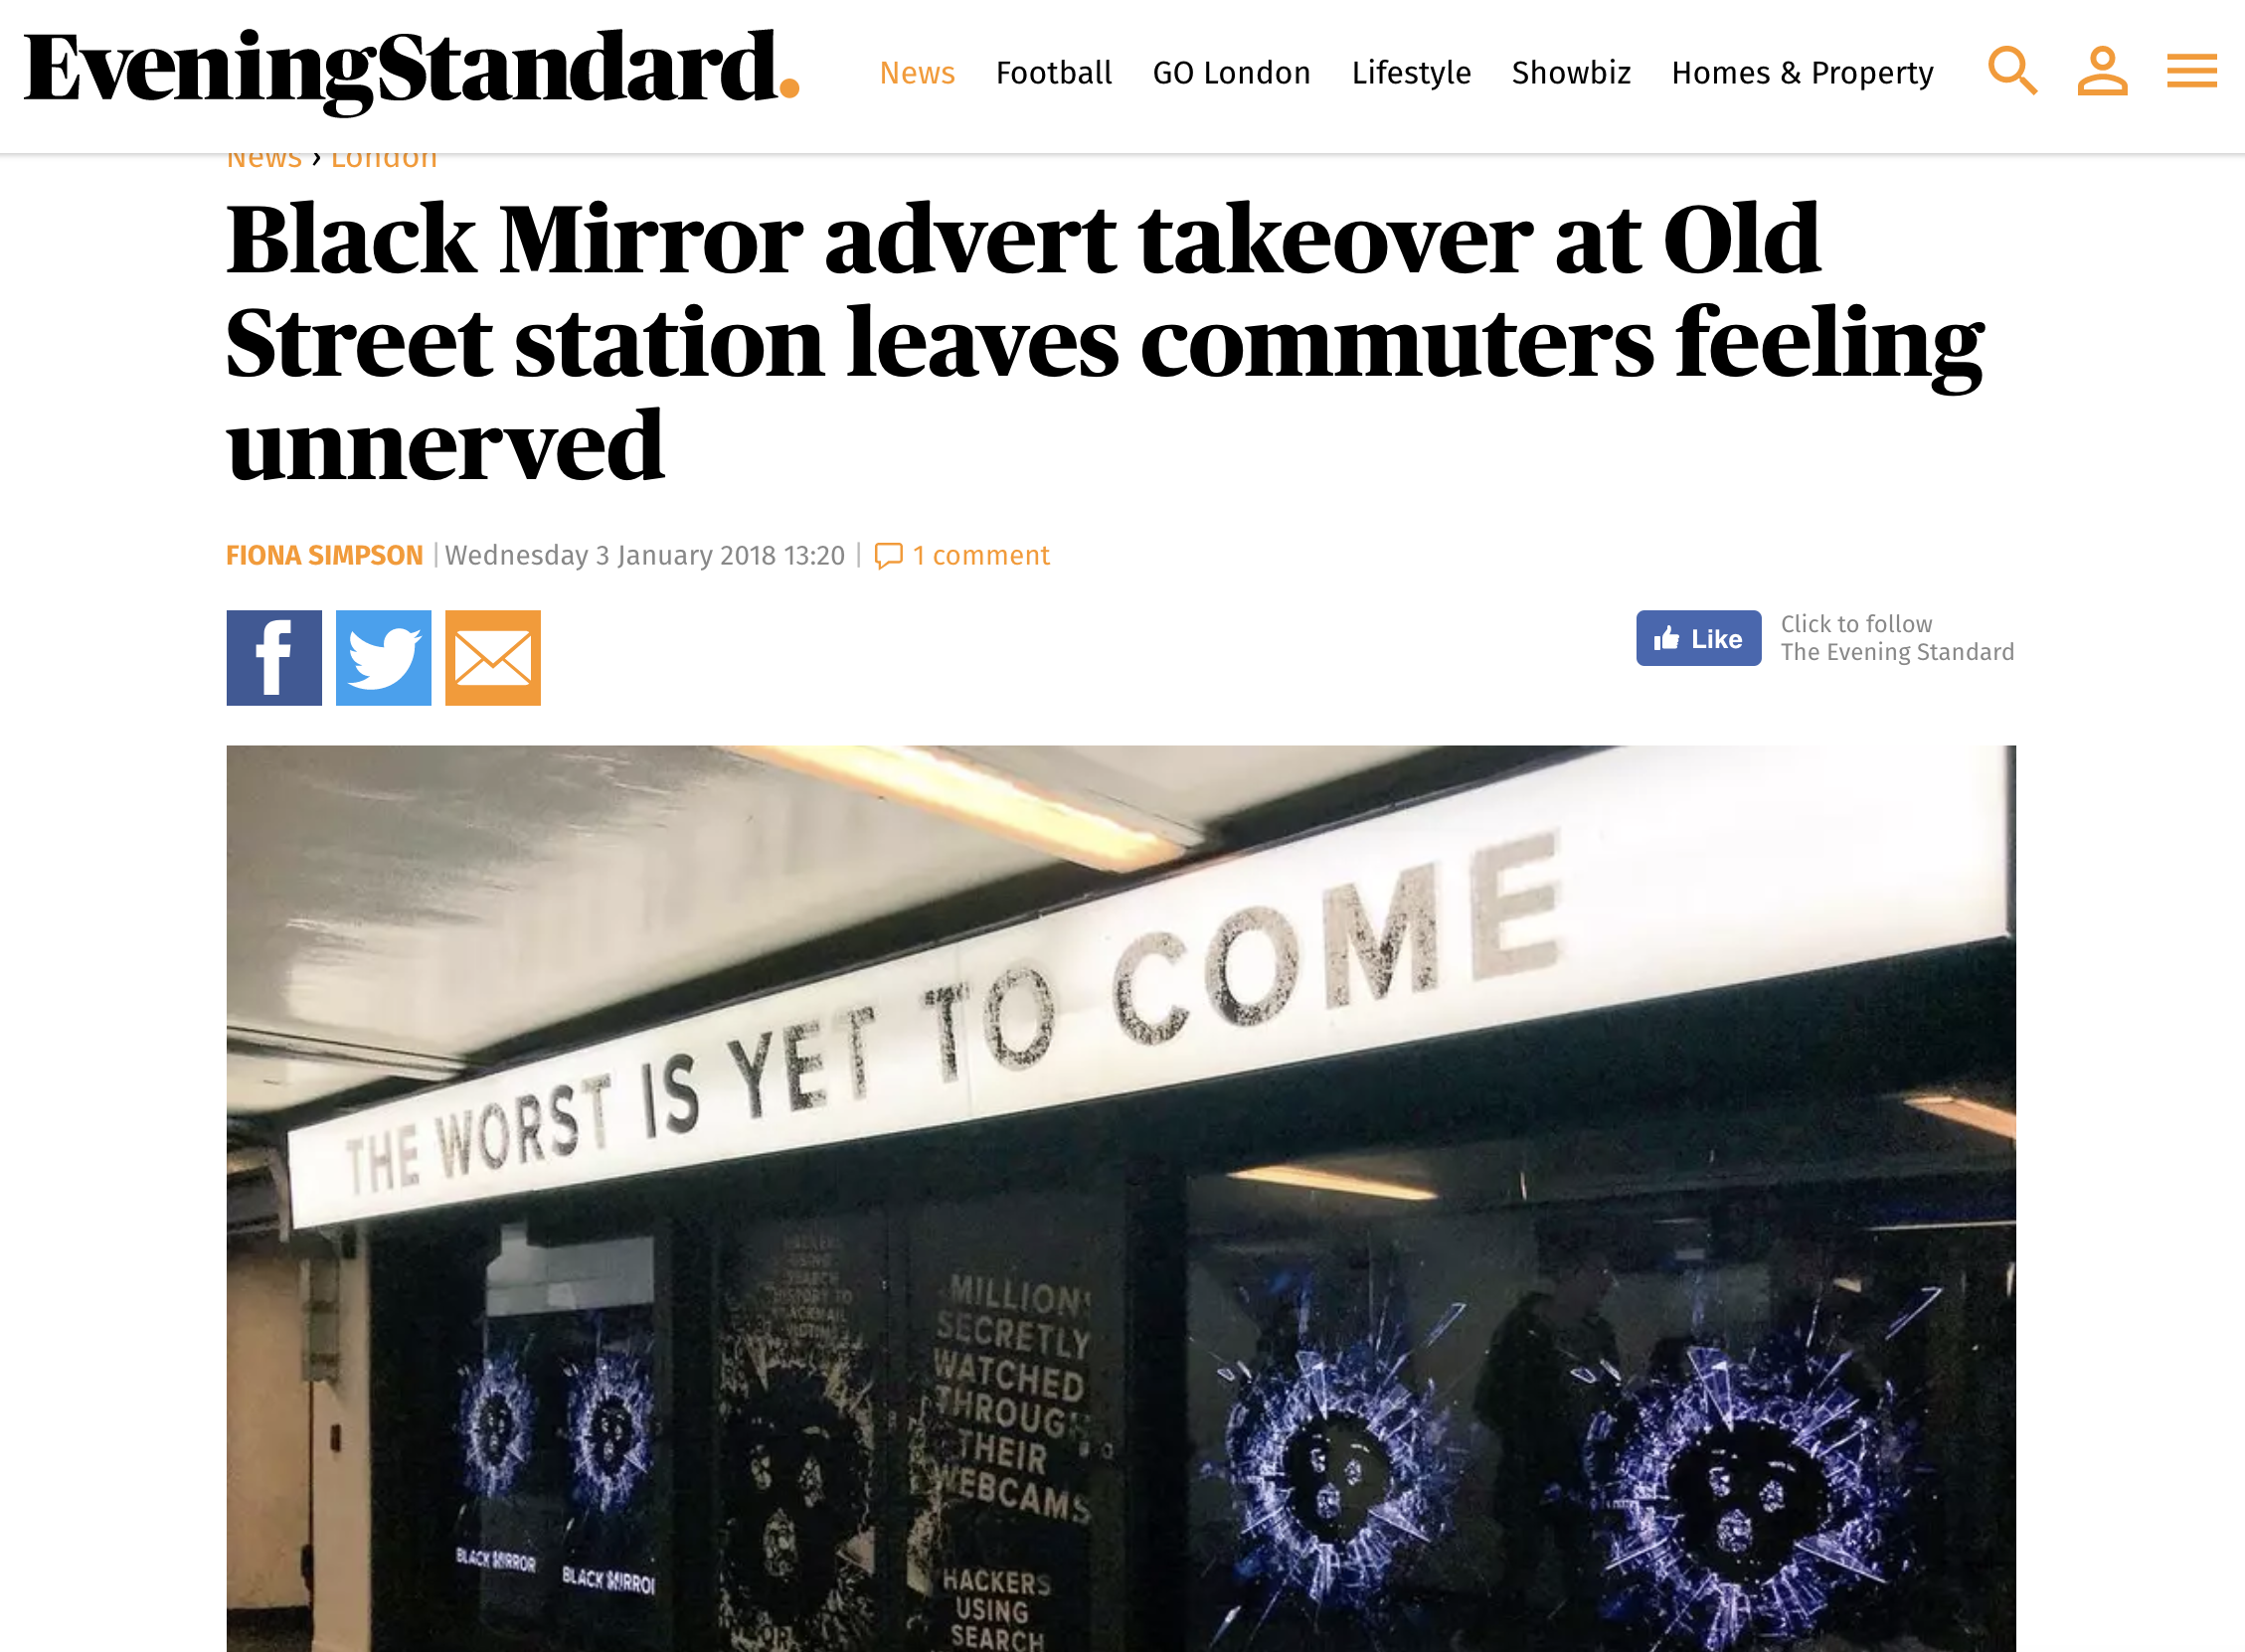 Black Mirror Ads take over Old Street Station